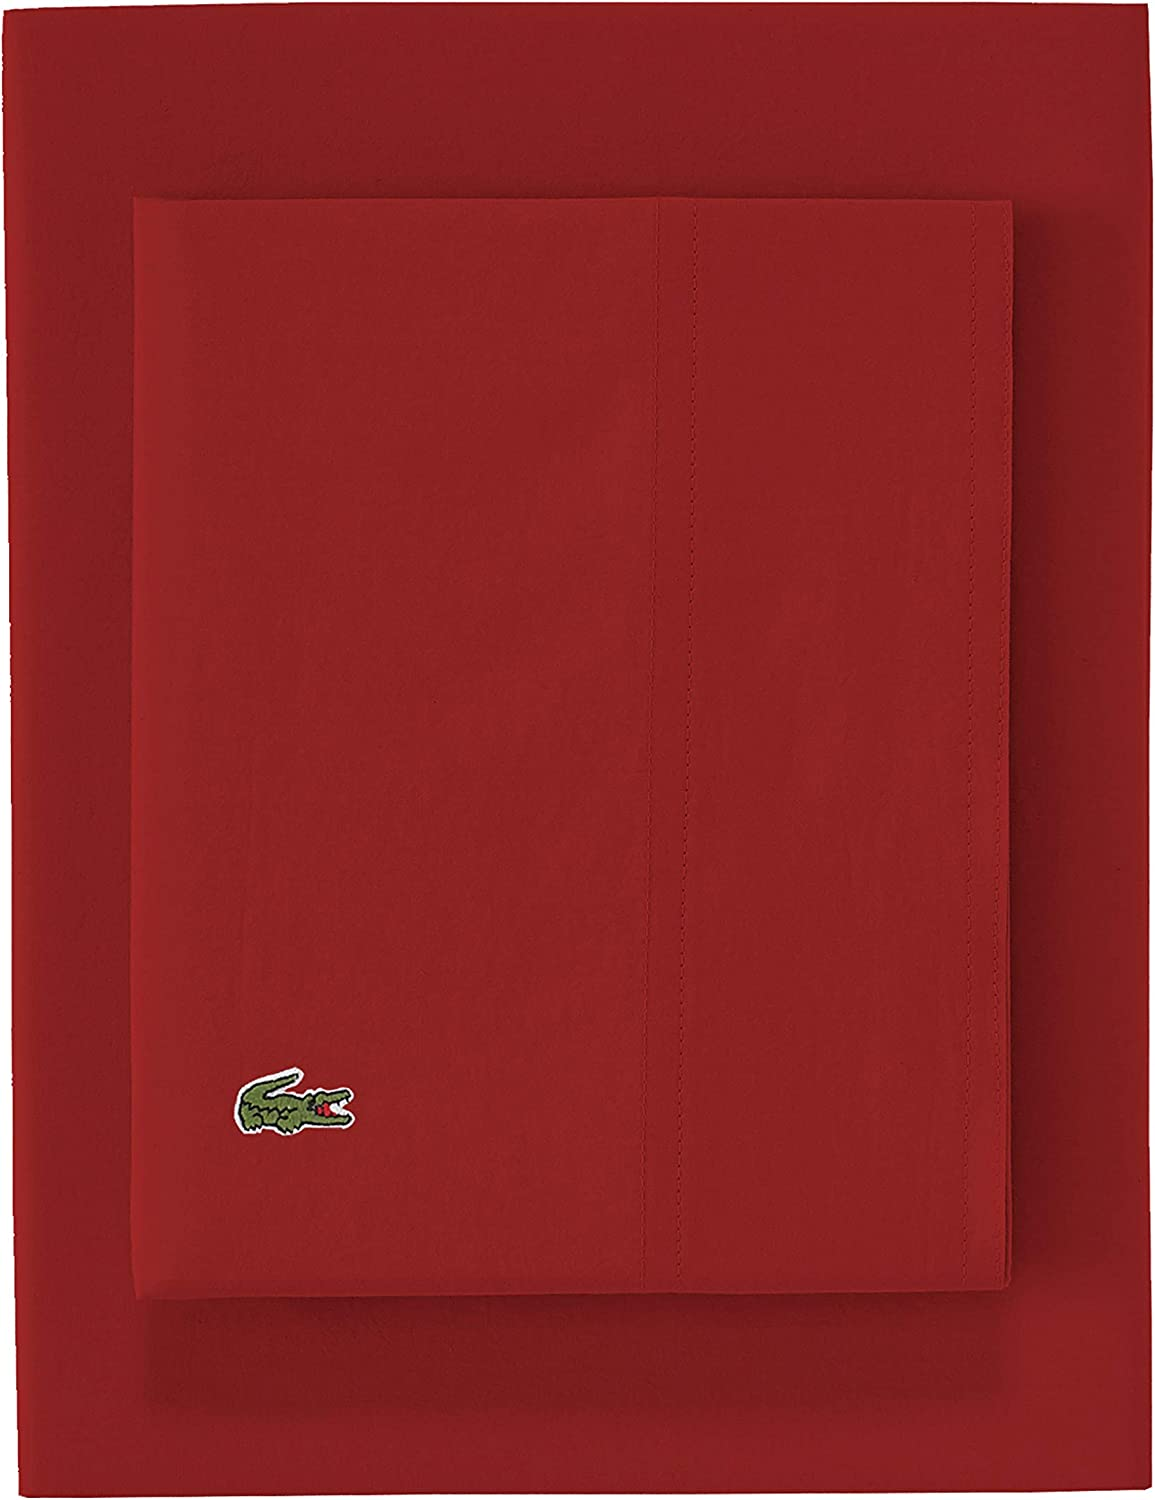 Lacoste Red Cotton Percale Bed Sheet